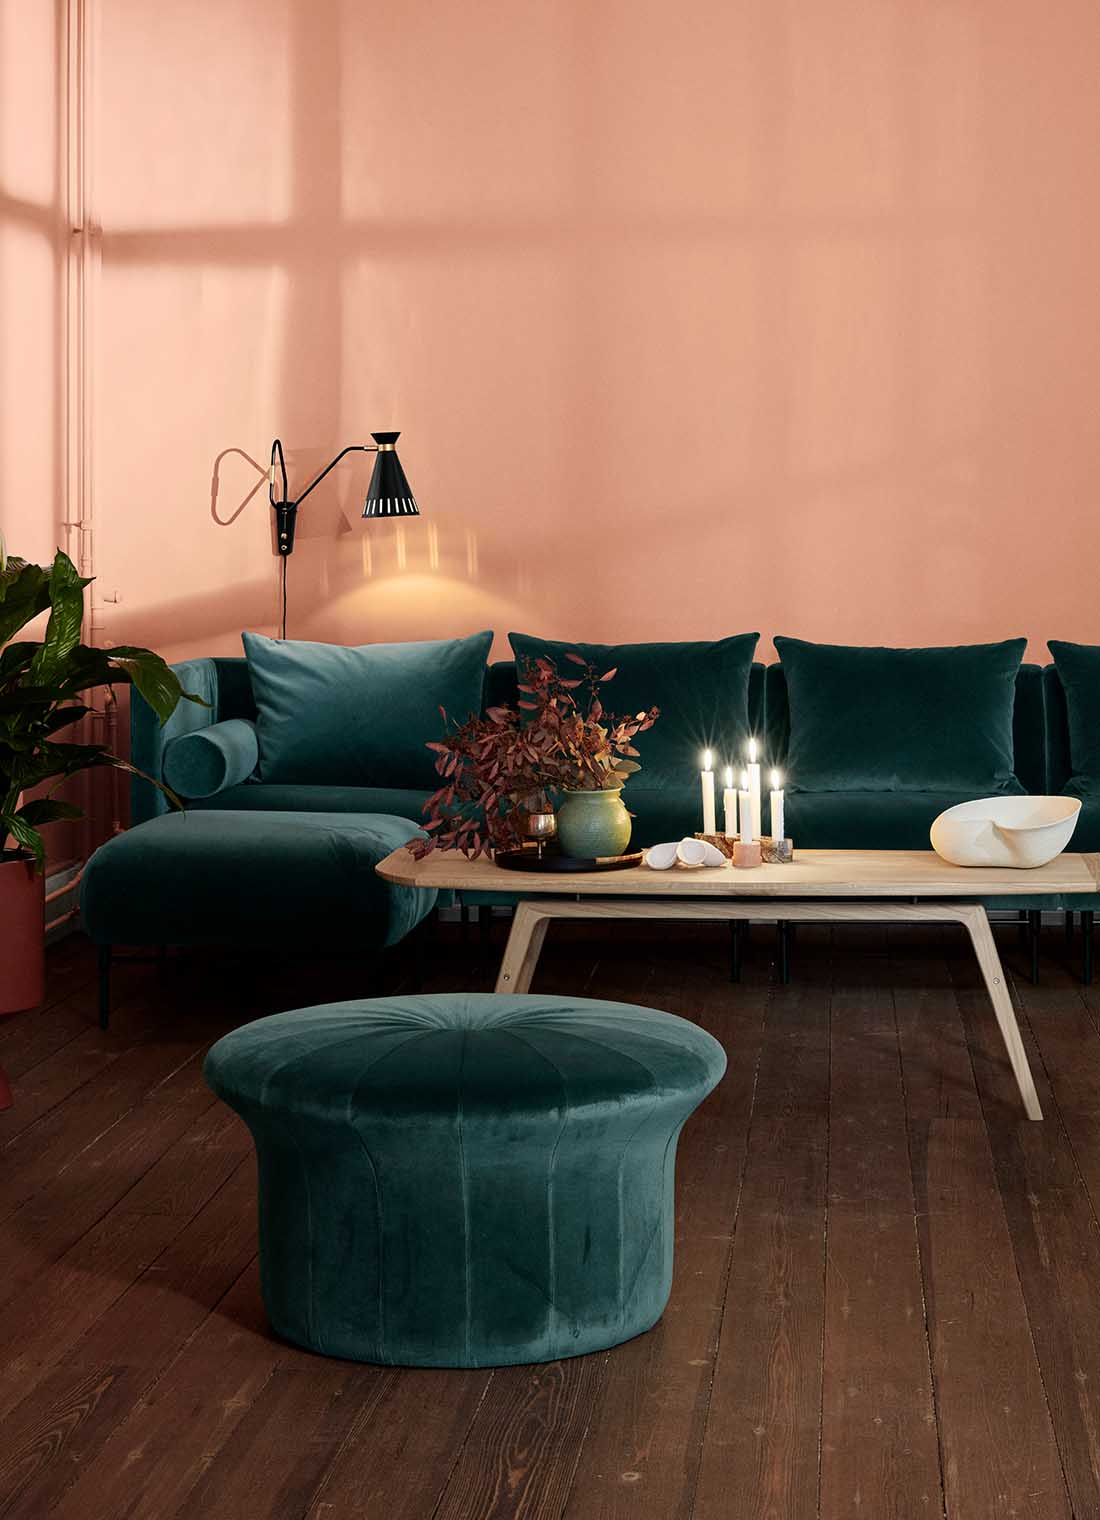 Grace pouffe together with galore sofa